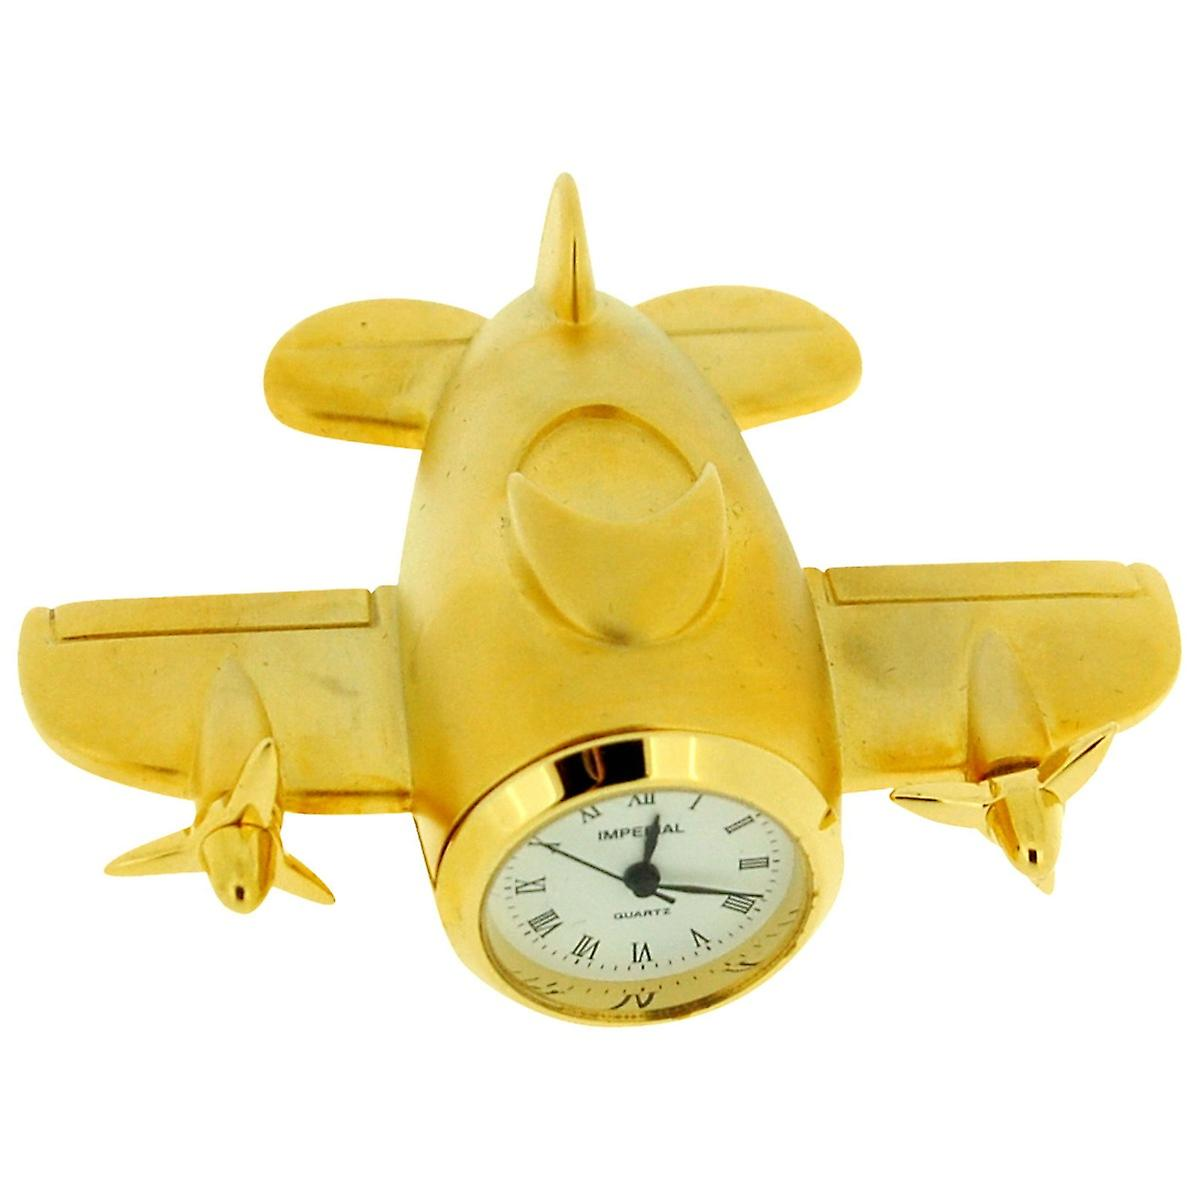 Clock Collectors Imp63 Miniature Metal Analogue Gold Plated Aeroplane Novelty dhQrCxts